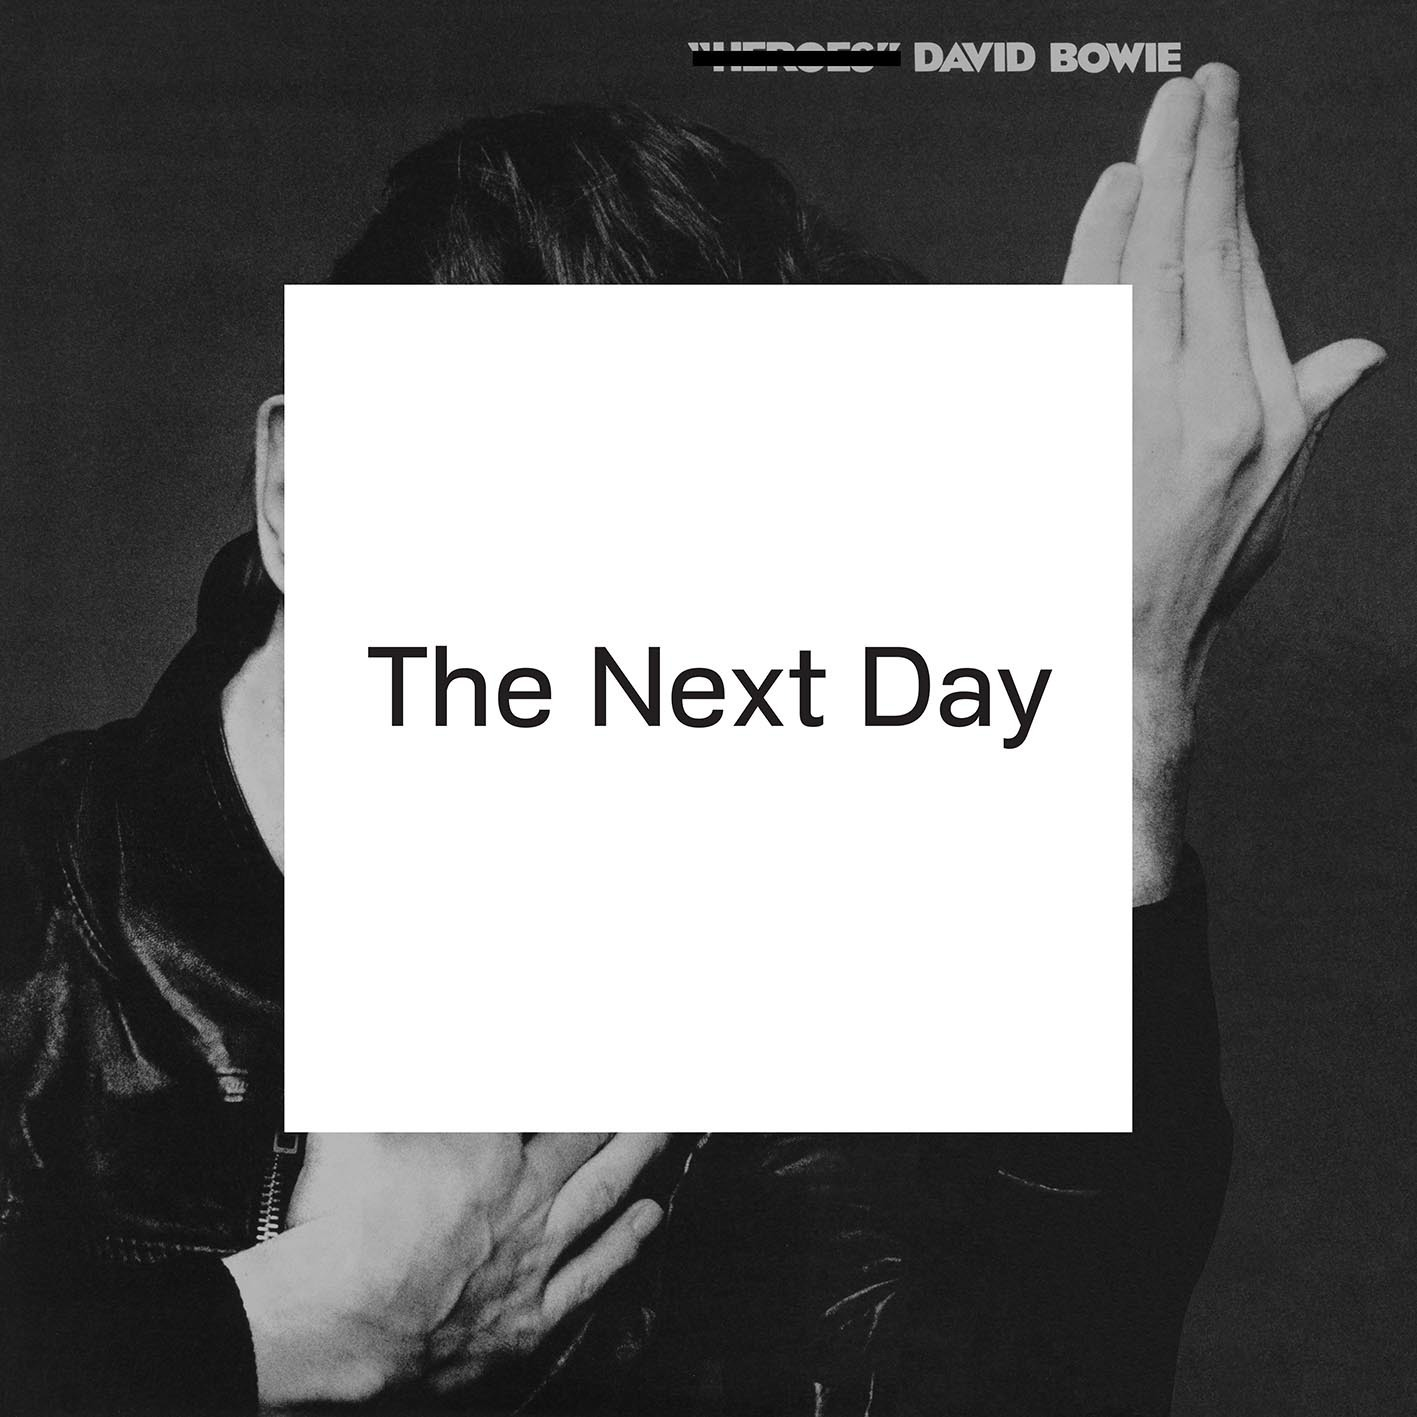 David Bowie's latest studio album, The Next Day, will be out on March 12.